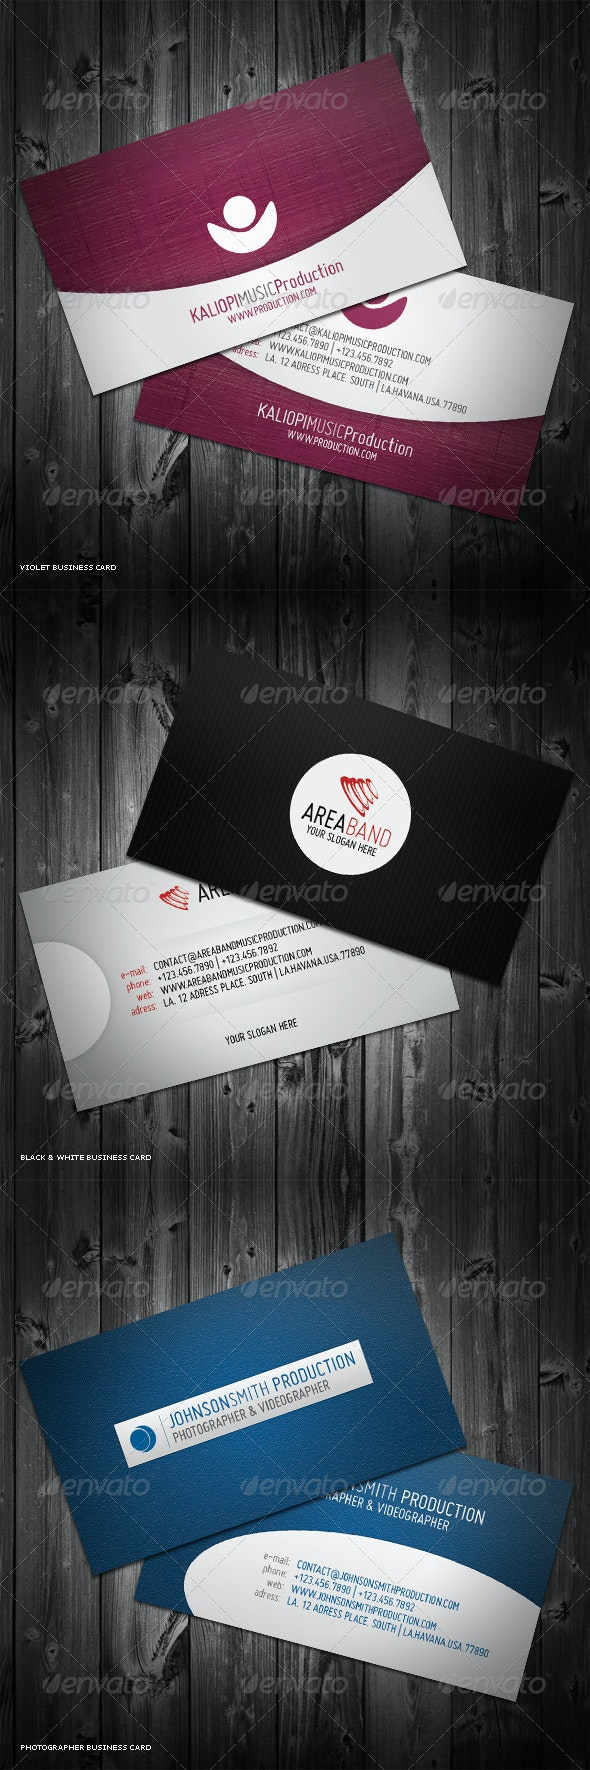 3in1 Business Cards Bundle #4 - Corporate Business Cards